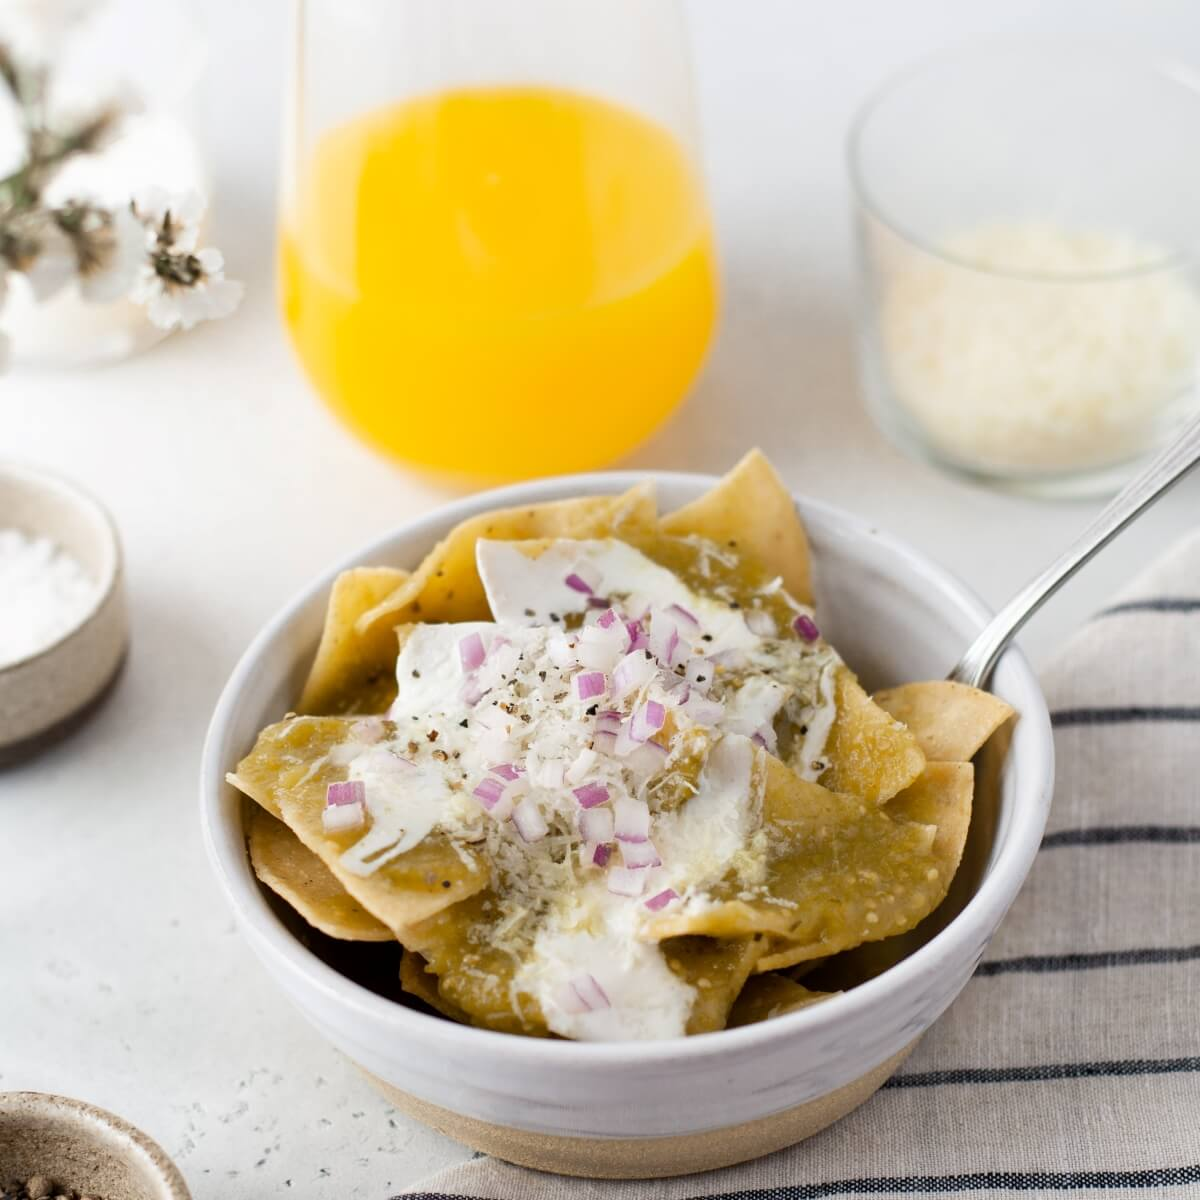 A breakfast setting featuring a bowl of Chilaquiles Verdes topped with sour cream, diced purple onions, cilantro, and cotija cheese.